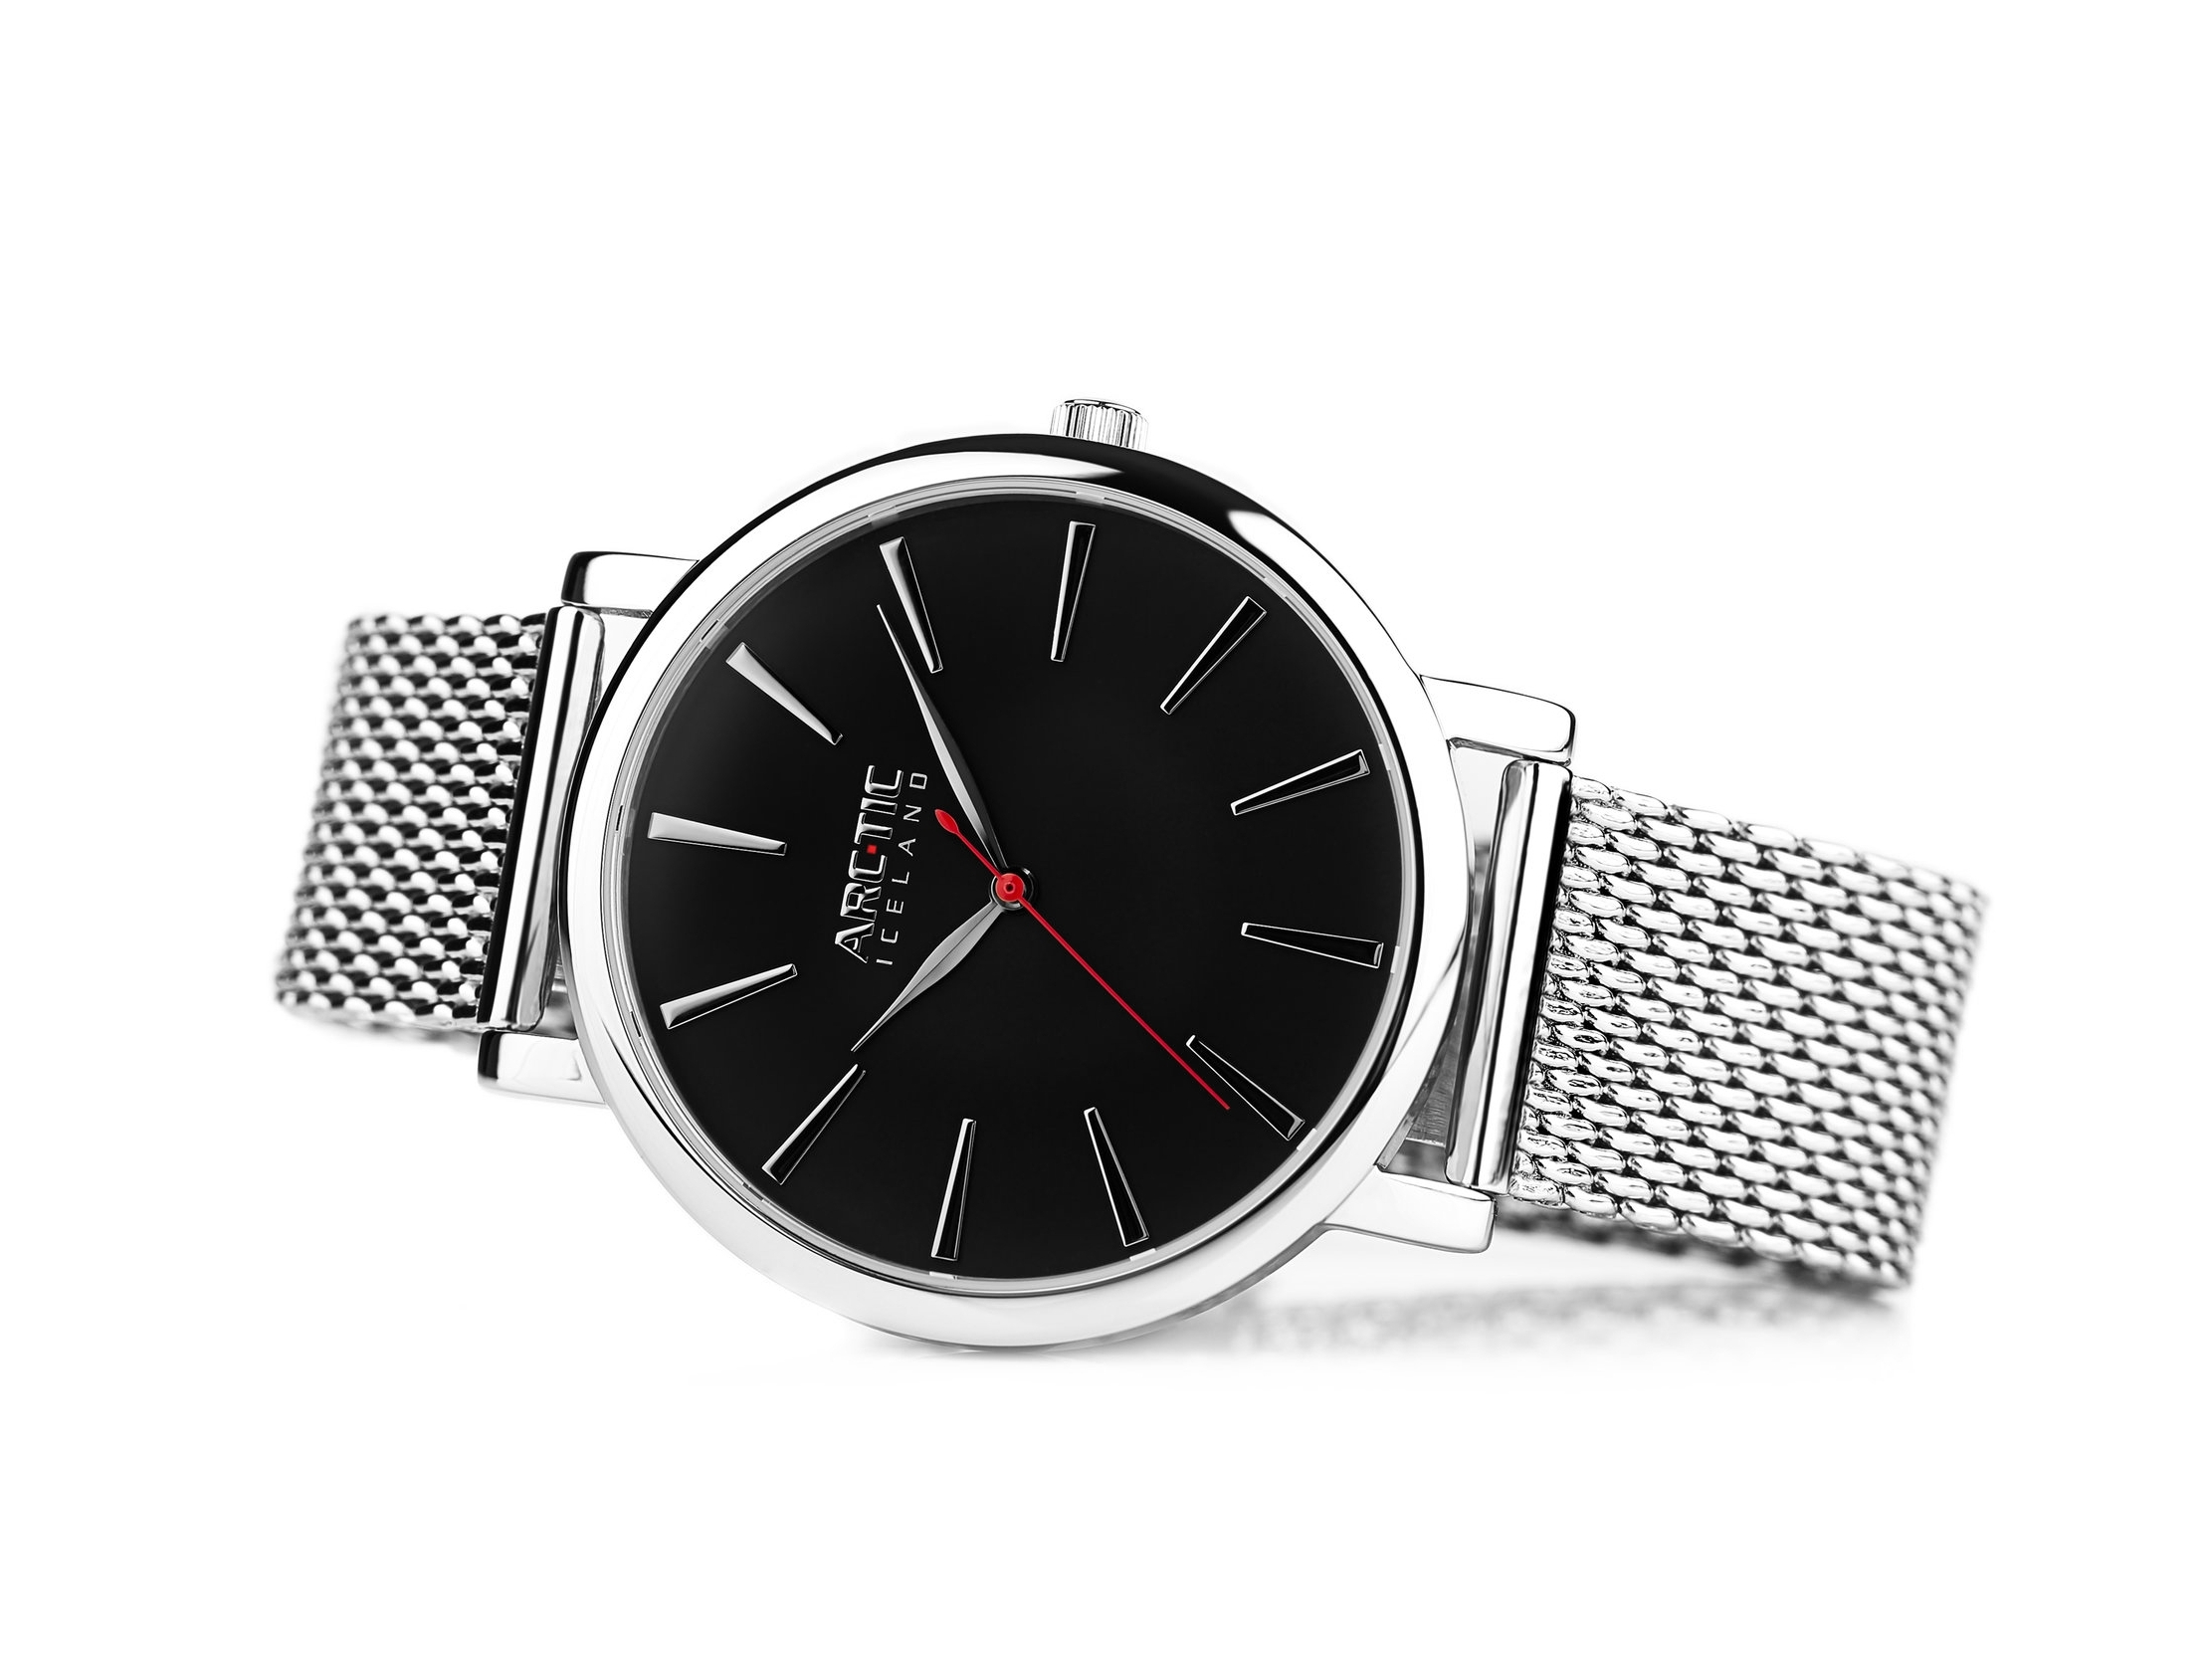 ARC-TIC Iceland Retro black 36mm with Steel band -  Learn More